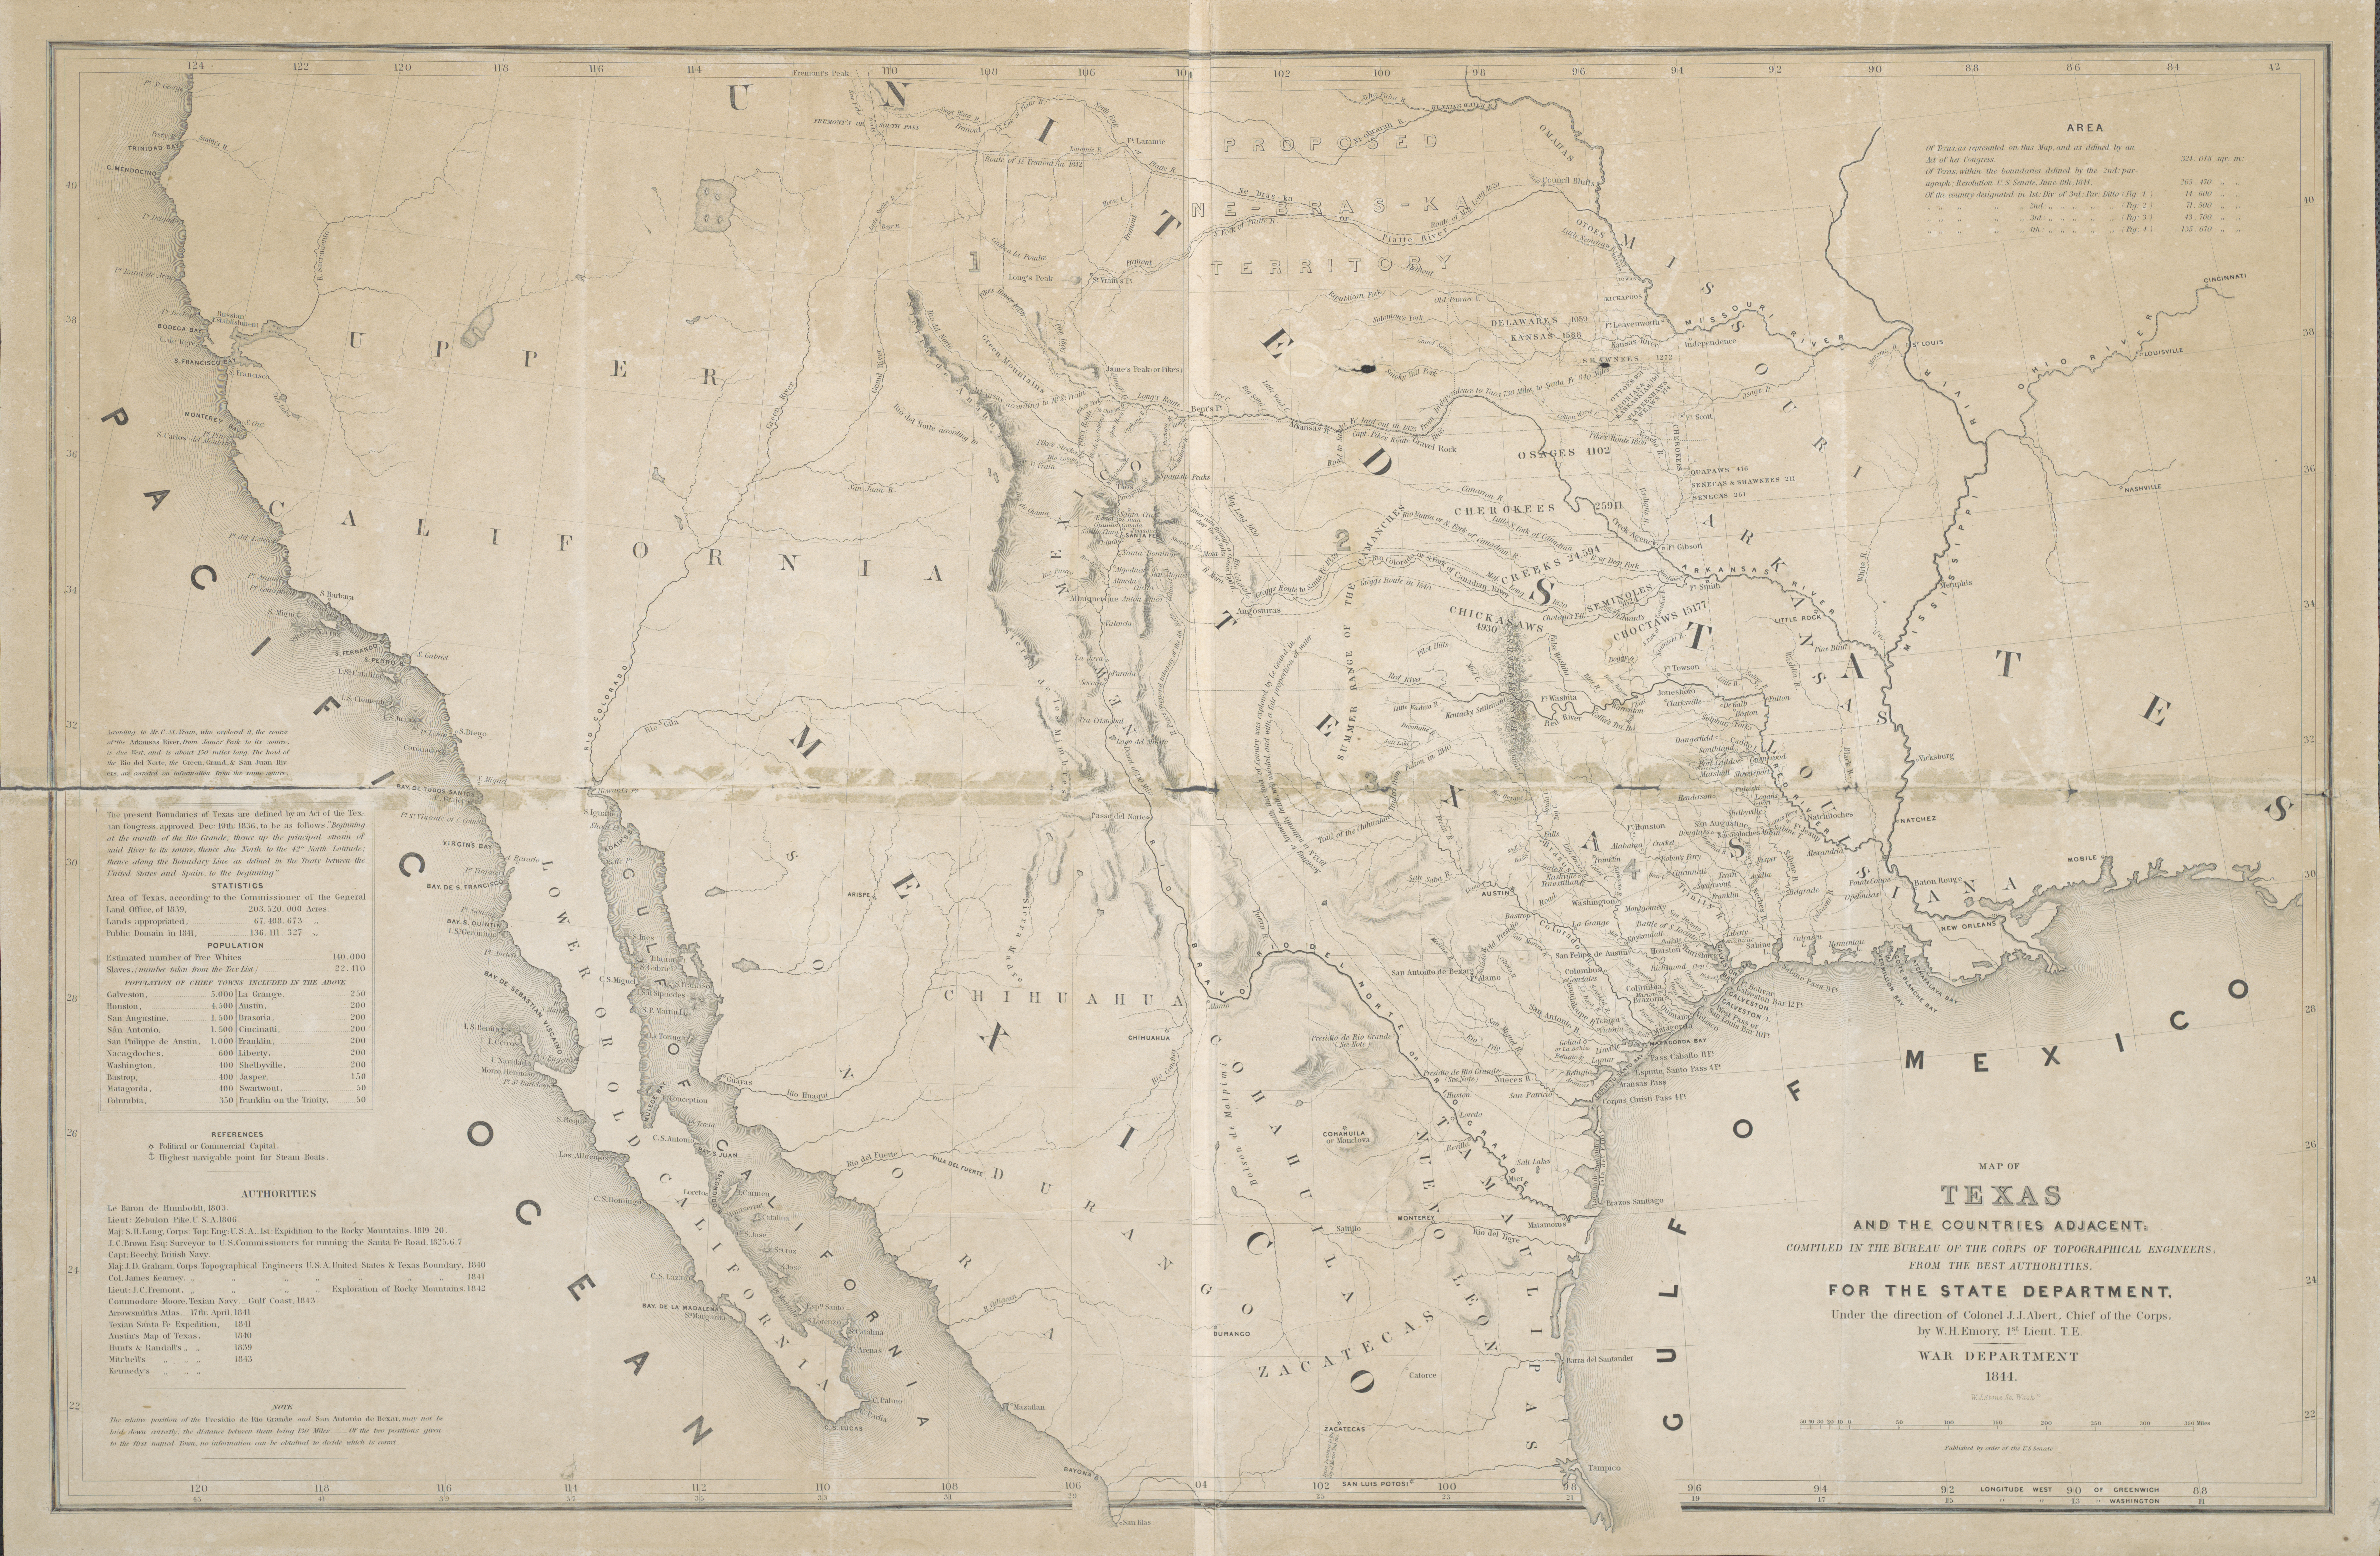 Maps Map Of Texas And The Countries Adjacent Compiled In The - Us-corps-of-engineers-maps